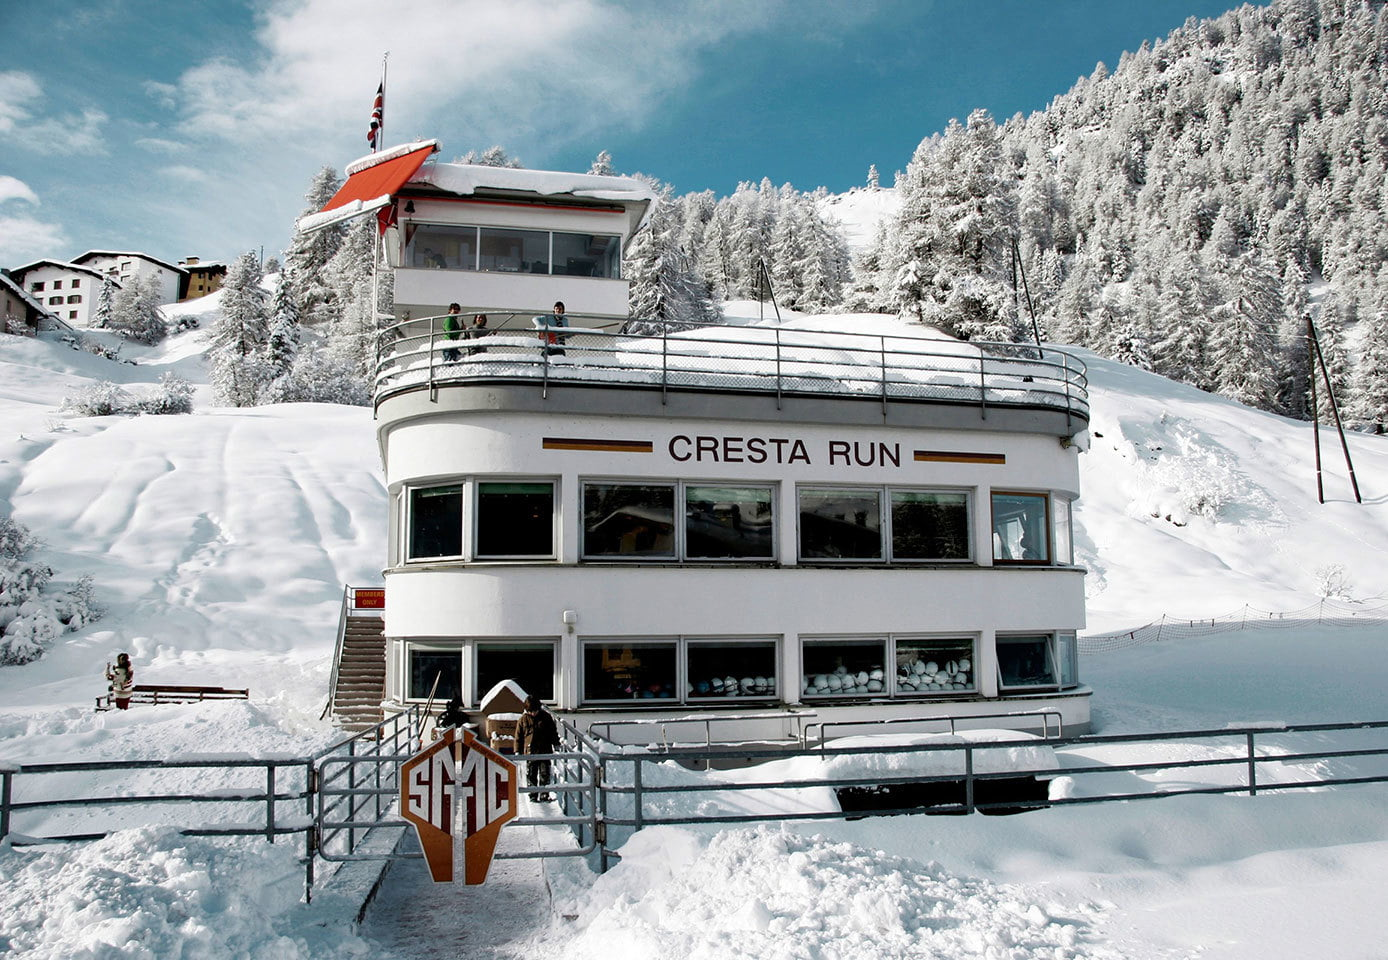 St Moritz Tobogganing Club & The Cresta Run